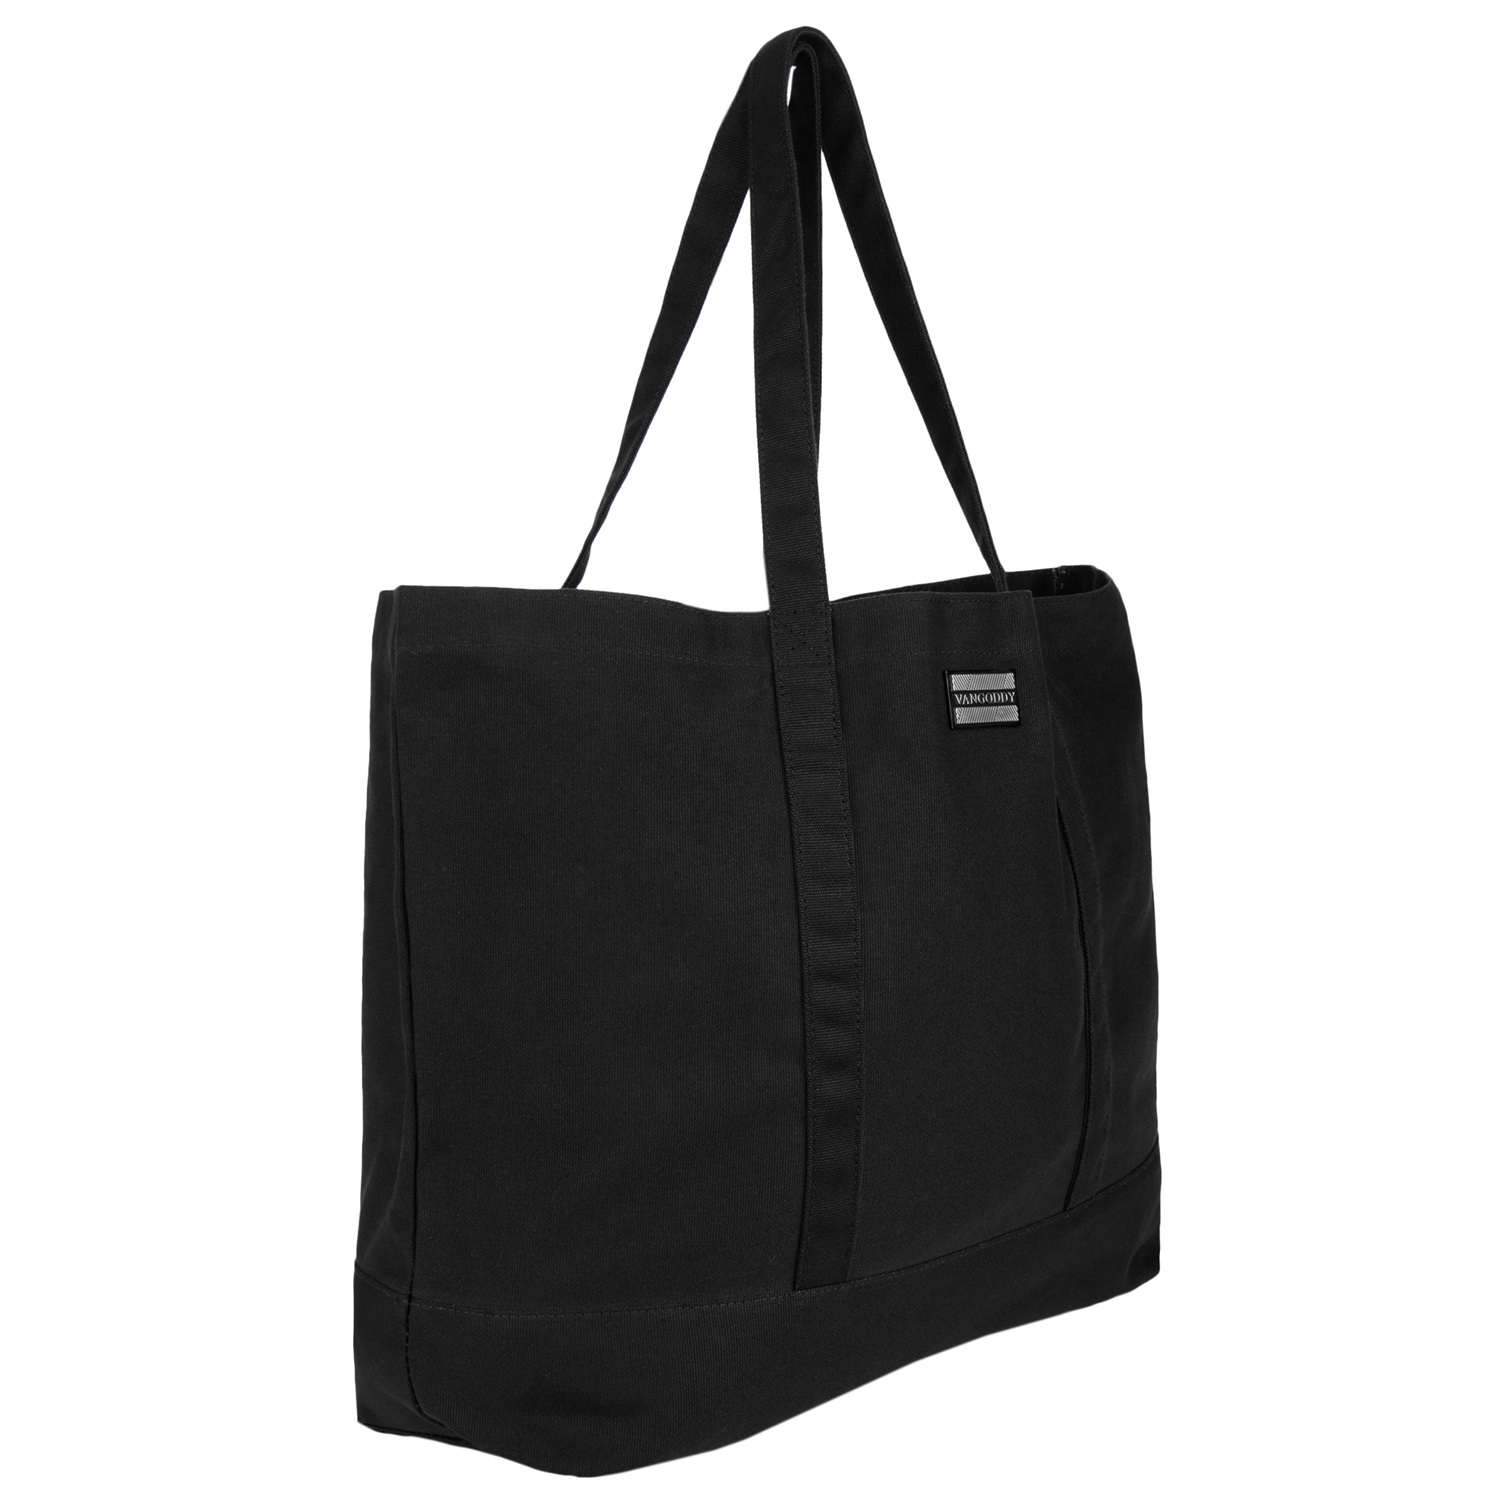 Isling Tote Bag (Black)